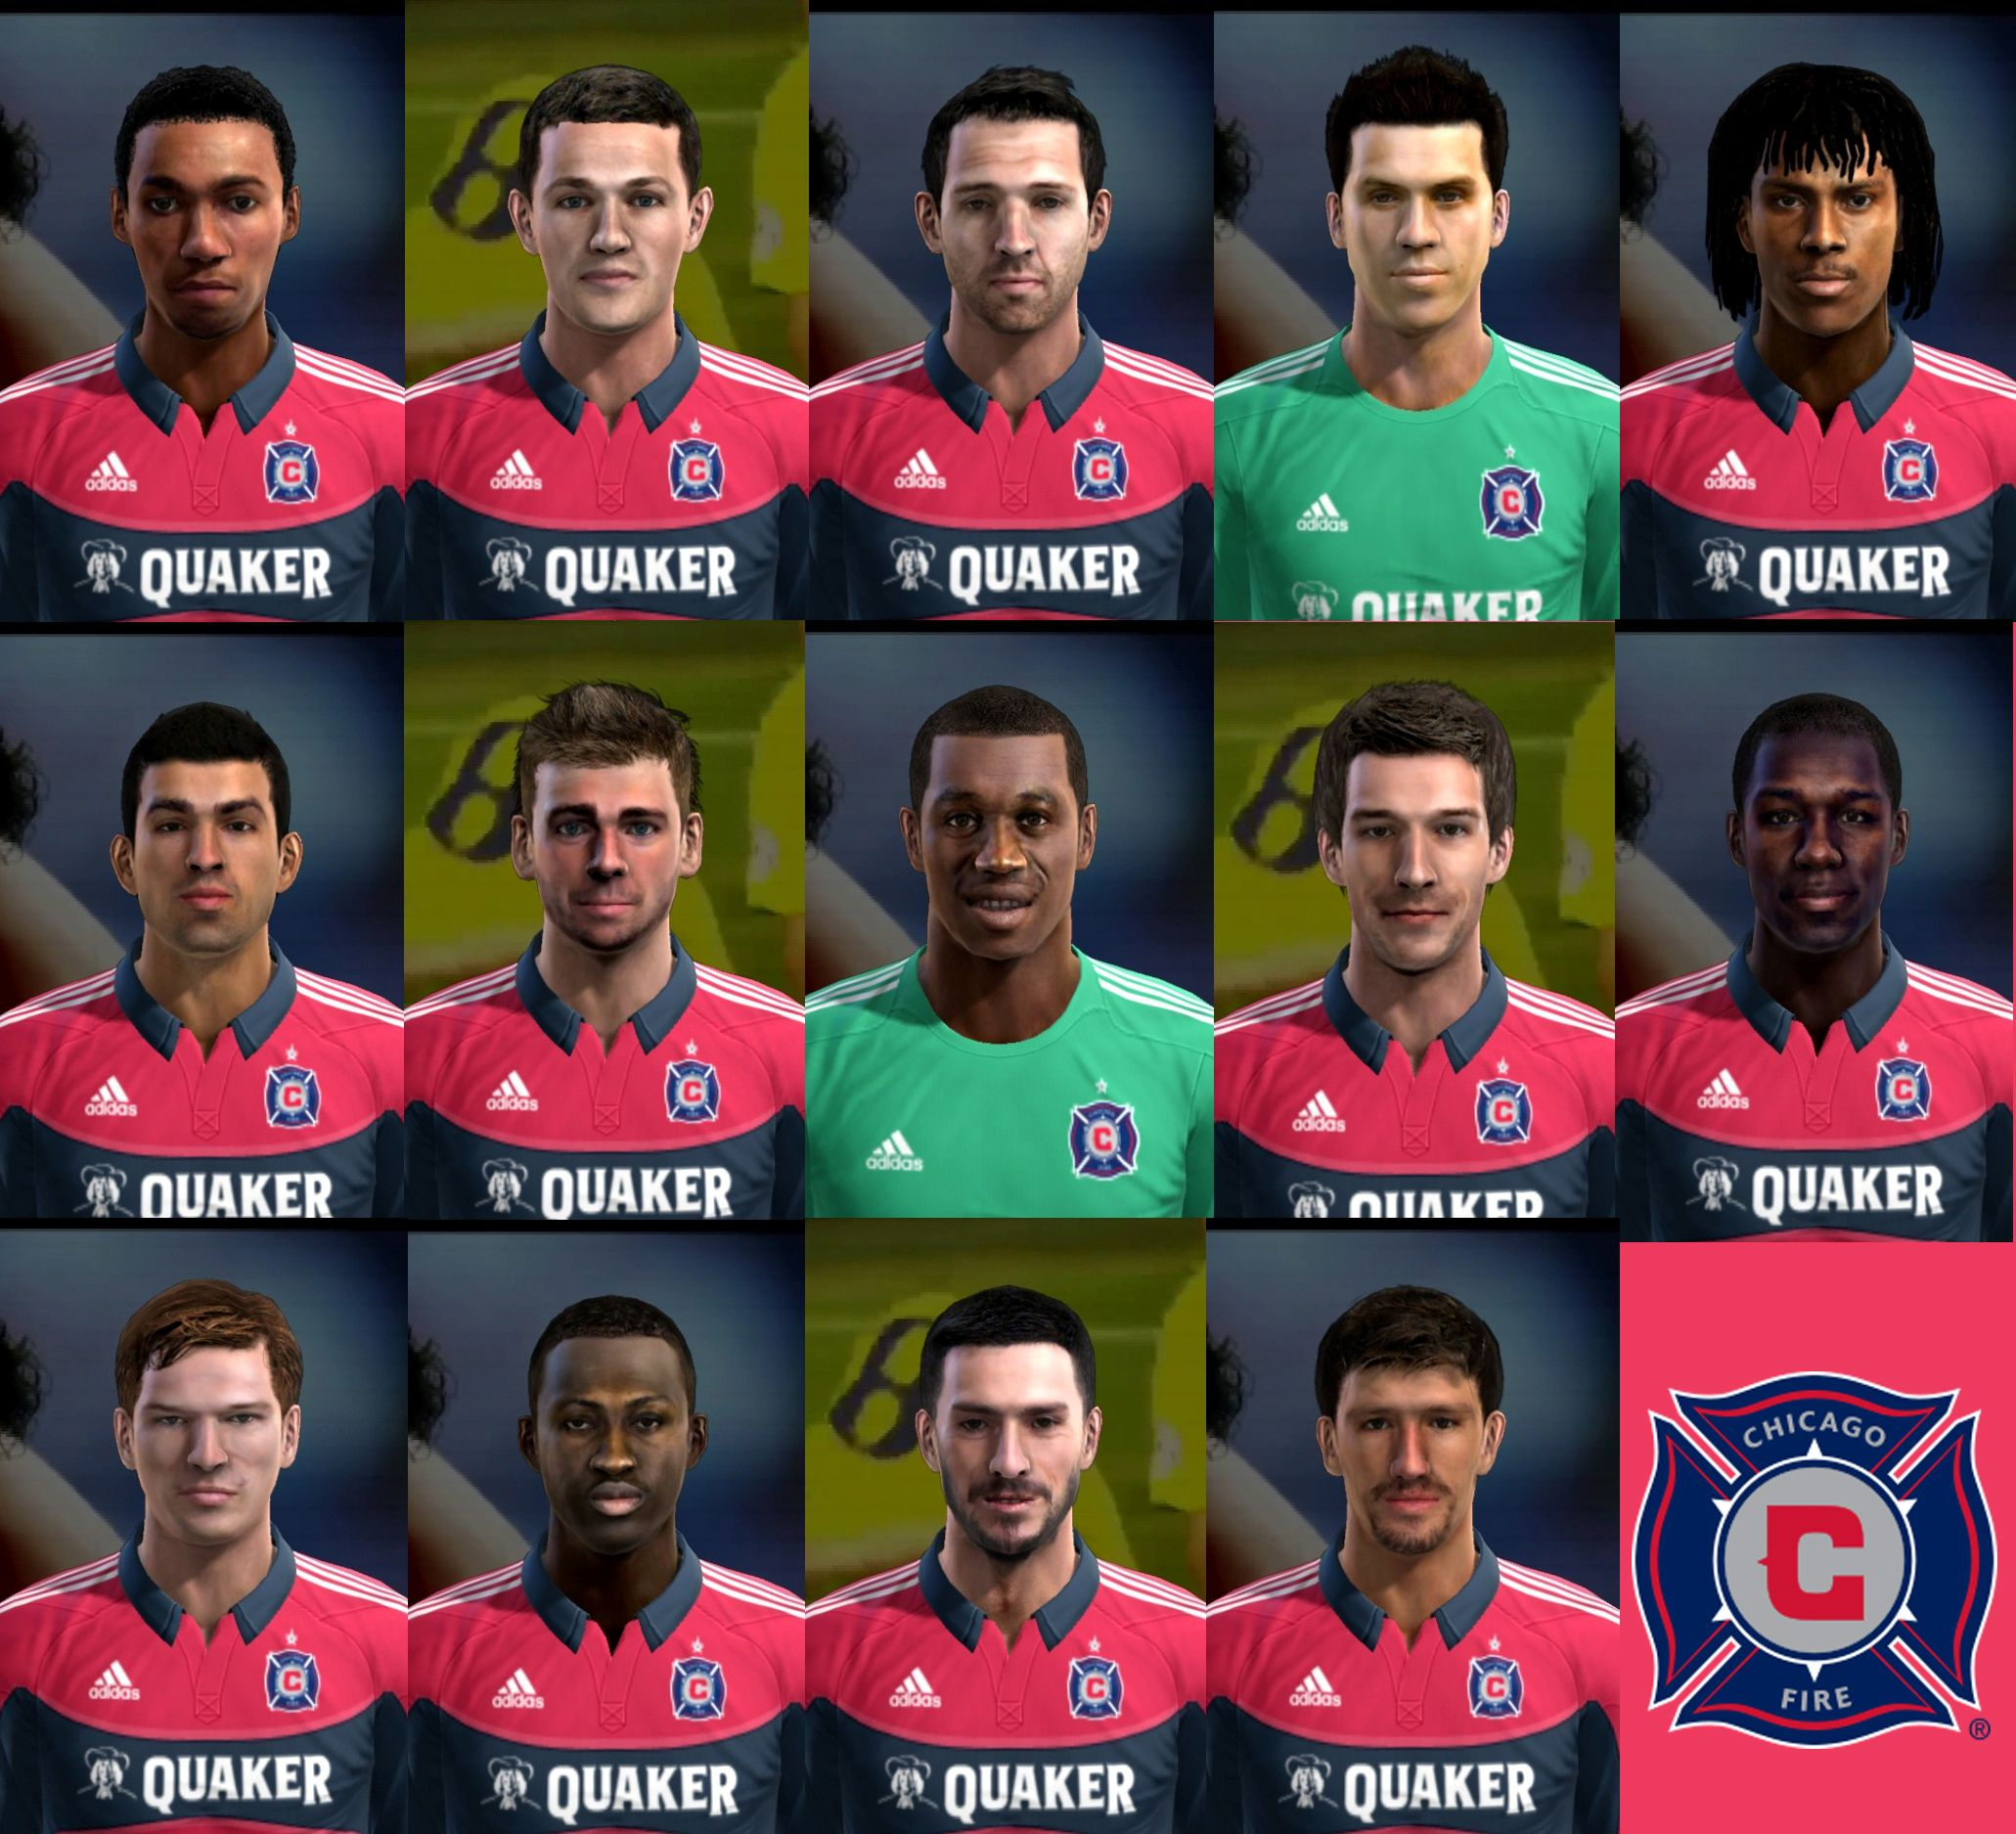 PES 2013 Chicago Fire Facepack by cirkac-95